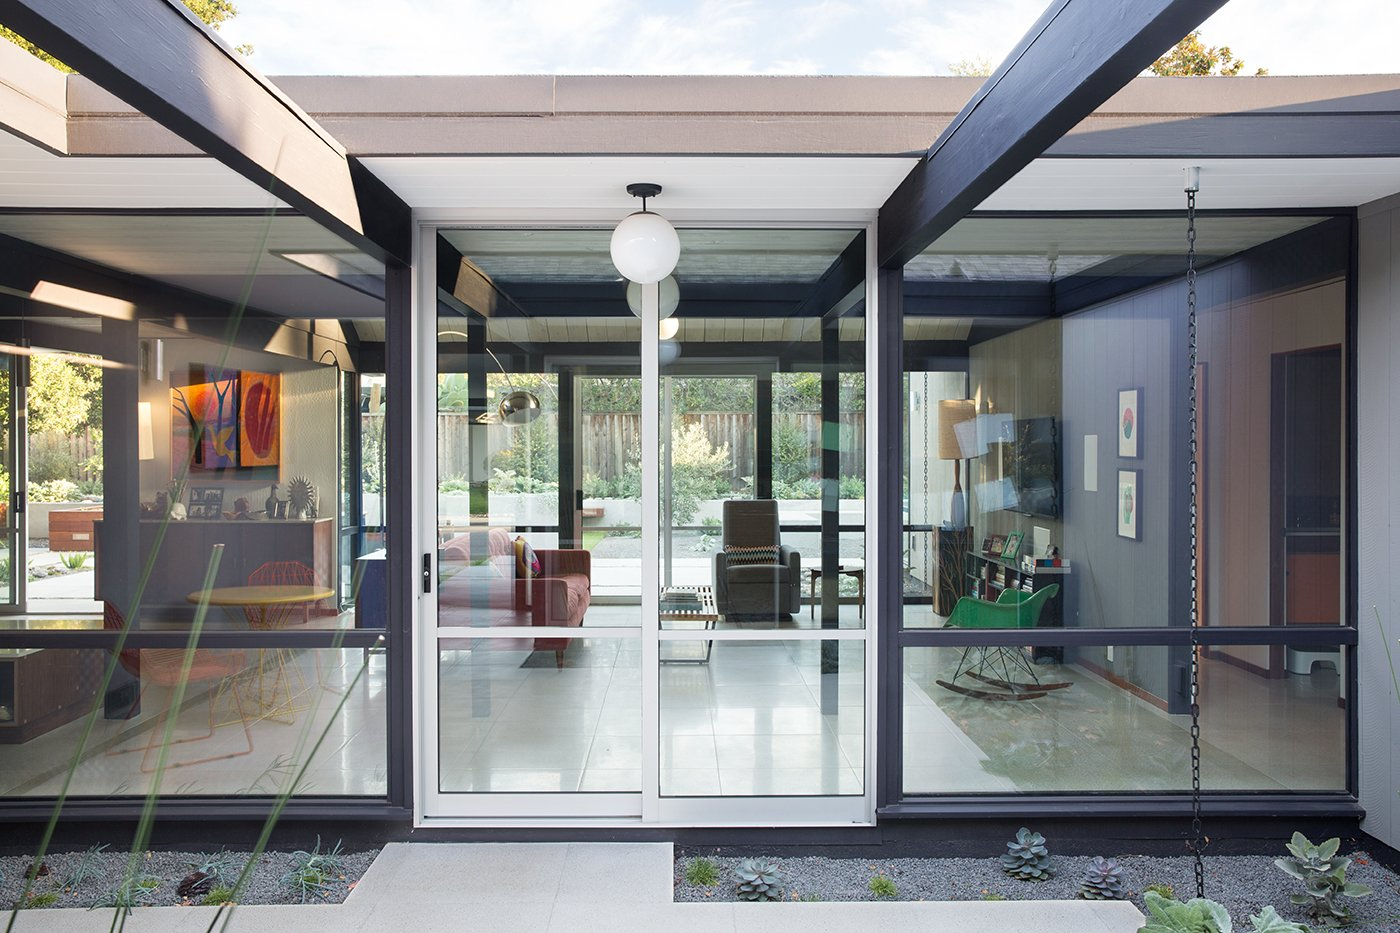 "Renewed Classic Eichler Remodel  Klopf Architecture, Growsgreen Landscape Design, and Flegel's Construction partnered to bring this mid-century atrium Eichler home up to 21st century standards. Together with the owners, Geoff Campen and the Klopf Architecture team carefully integrated elements and ideas from the mid-century period without making the space seem dated. They entrusted Klopf Architecture to respectfully expand and update the home, while still keeping it ""classic"". The Klopf team helped them open up the kitchen, dining, and living spaces into one flowing great room, expand the master suite, replace the kitchen and bathrooms, and provide additional features like an office and powder room, all while maintaining the mid-century modern style of this Silicon Valley home.   Klopf Architecture by Klopf Architecture"